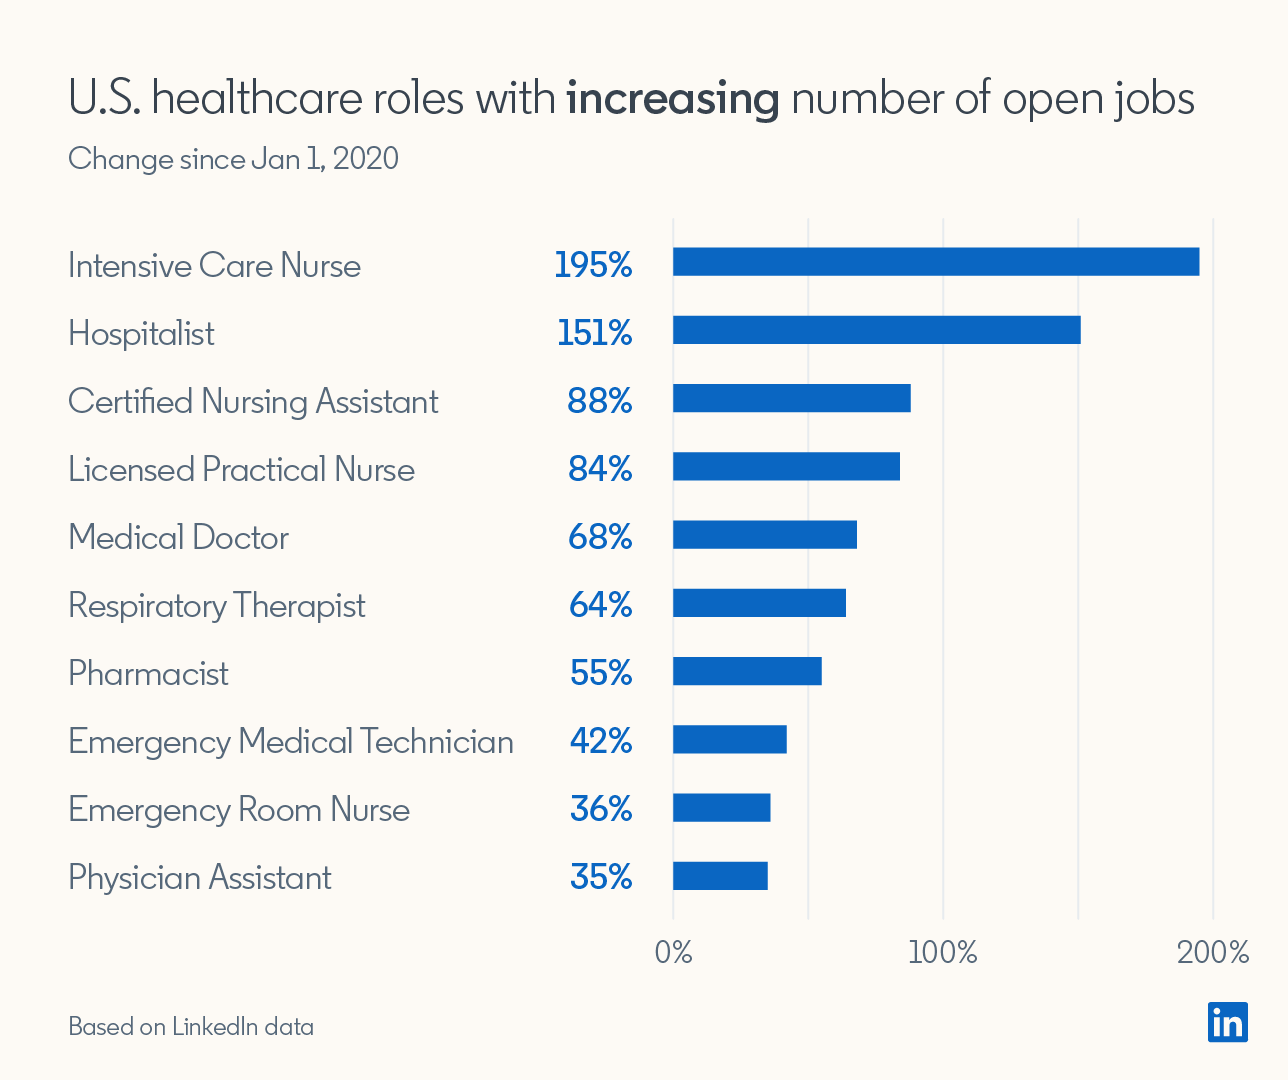 U.S. healthcare roles with increasing number of open jobs (Changes since Jan 1, 2020)  Intensive Care Nurse +195% Hospitalist +151% Certified Nursing Assistant +88% Licensed Practical Nurse +84% Medical Doctor +68% Respiratory Therapist +64% Pharmacist +55% Emergency Medical Technician +42% Emergency Room Nurse +36% Physician Assistant +35%  *Based on LinkedIn data